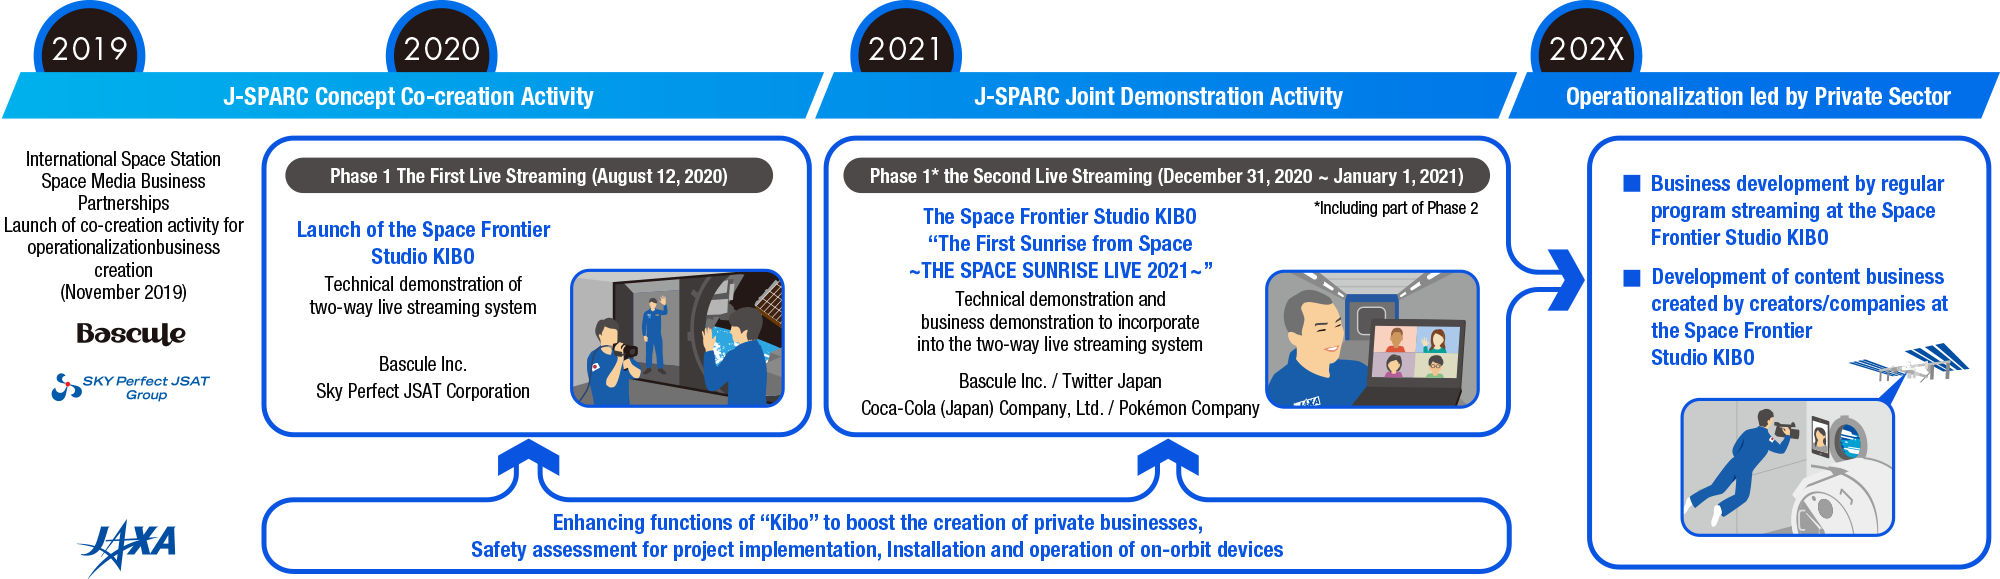 Activities and visions for operationalization of the Space Frontier Studio KIBO